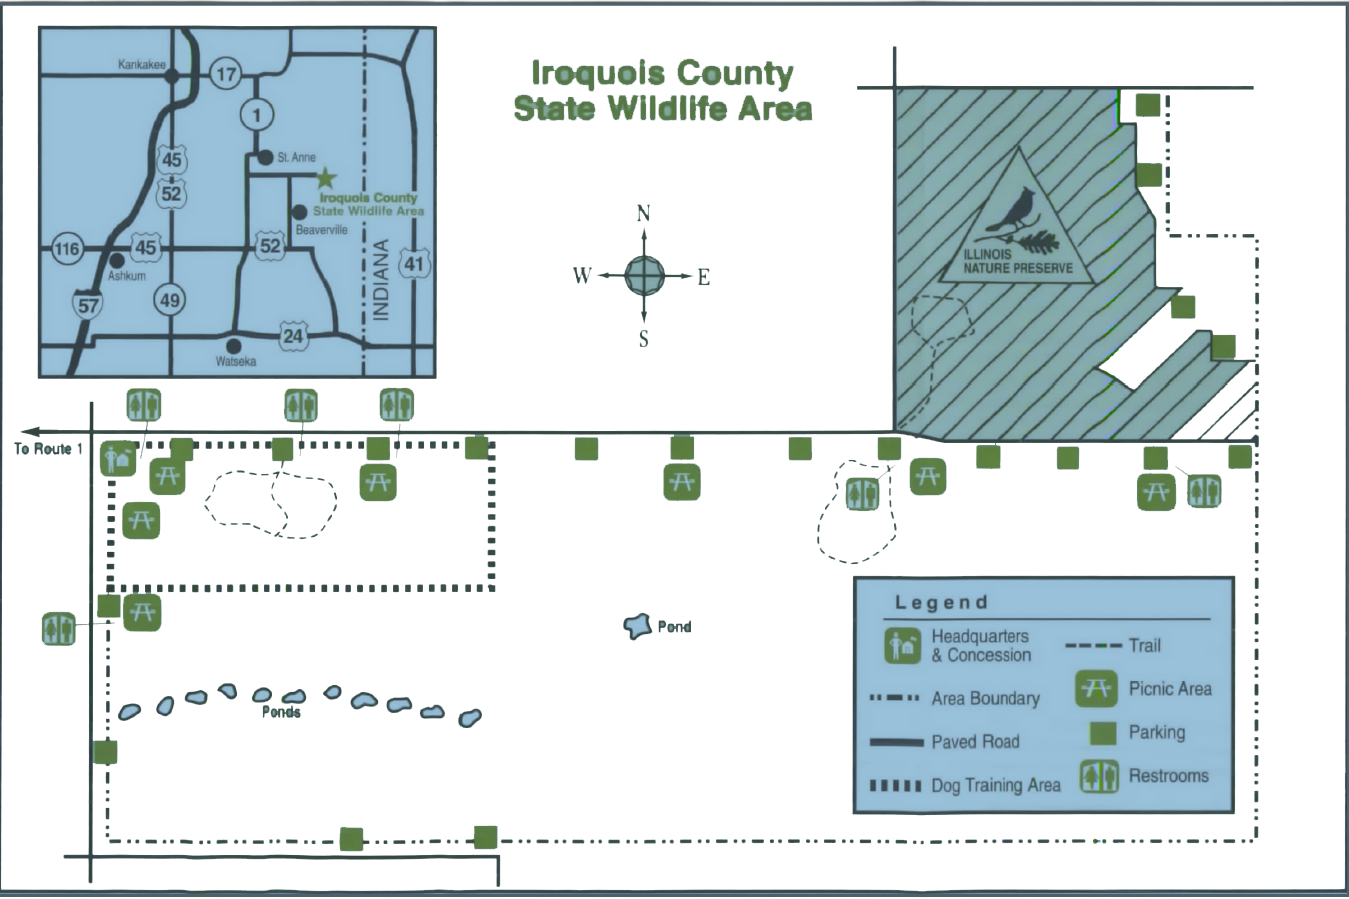 iroquois county singles Looking for iroquois county, il new listings point2 homes has 14 new listings in the iroquois county, il area with prices between $23,000 and $329,900 iroquois county, il realtors are here.